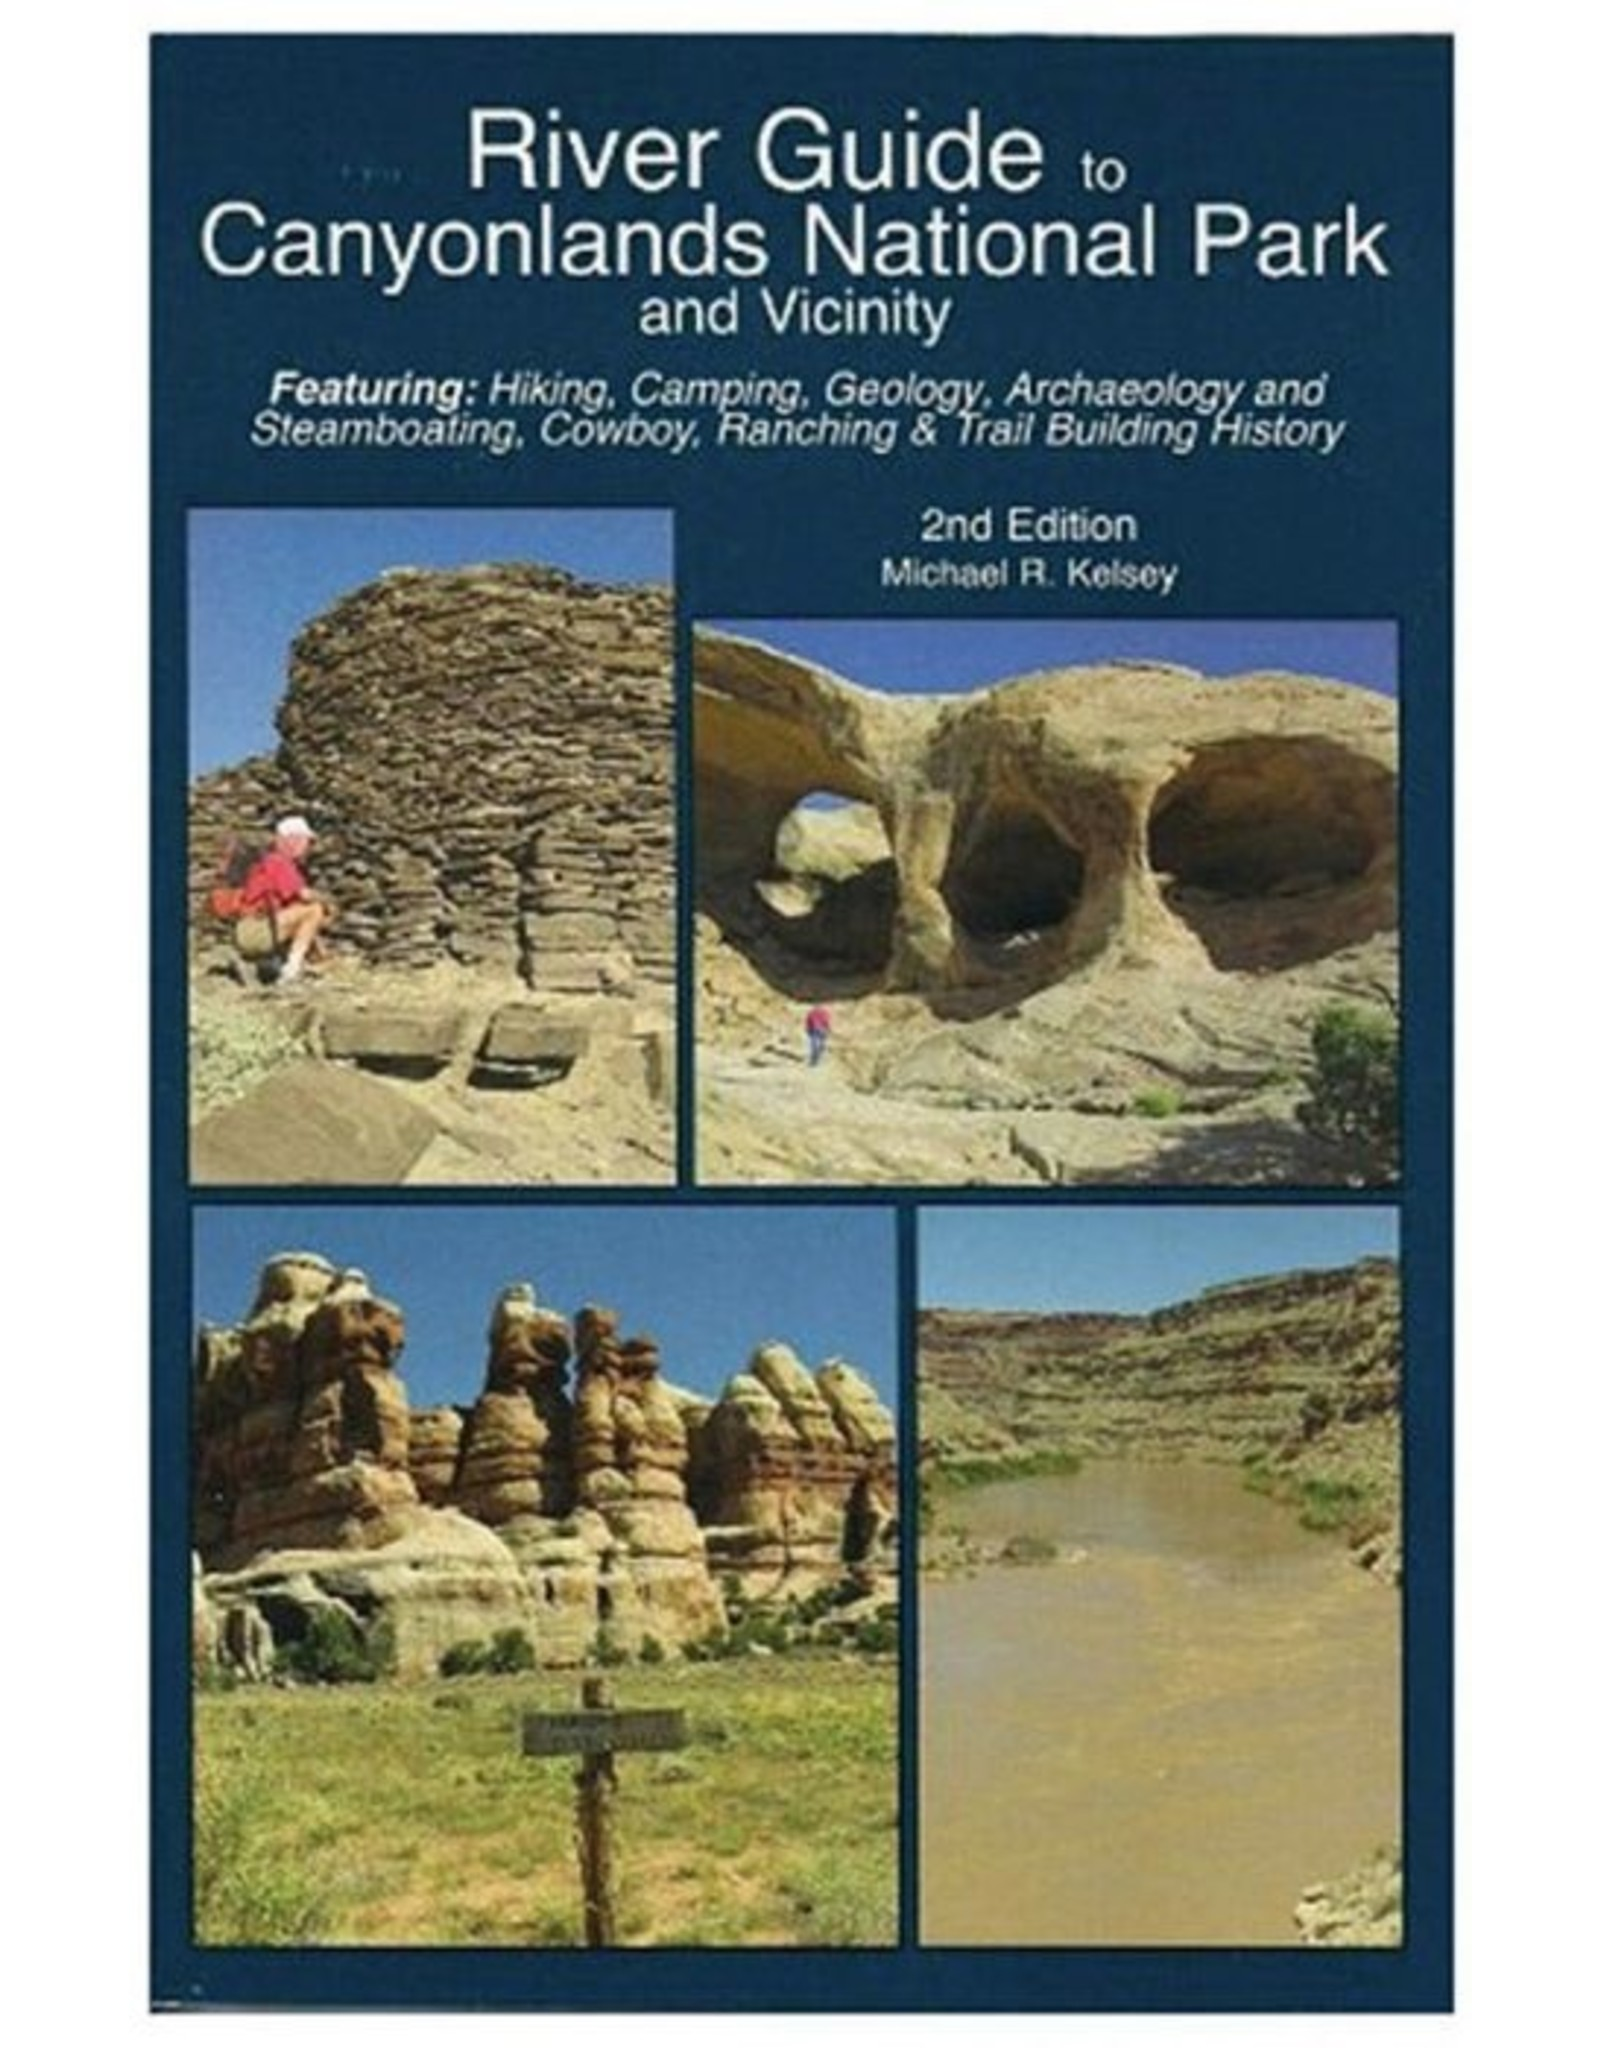 RIVER GUIDE TO CANYONLANDS NATIONAL PARK 2ND EDITION